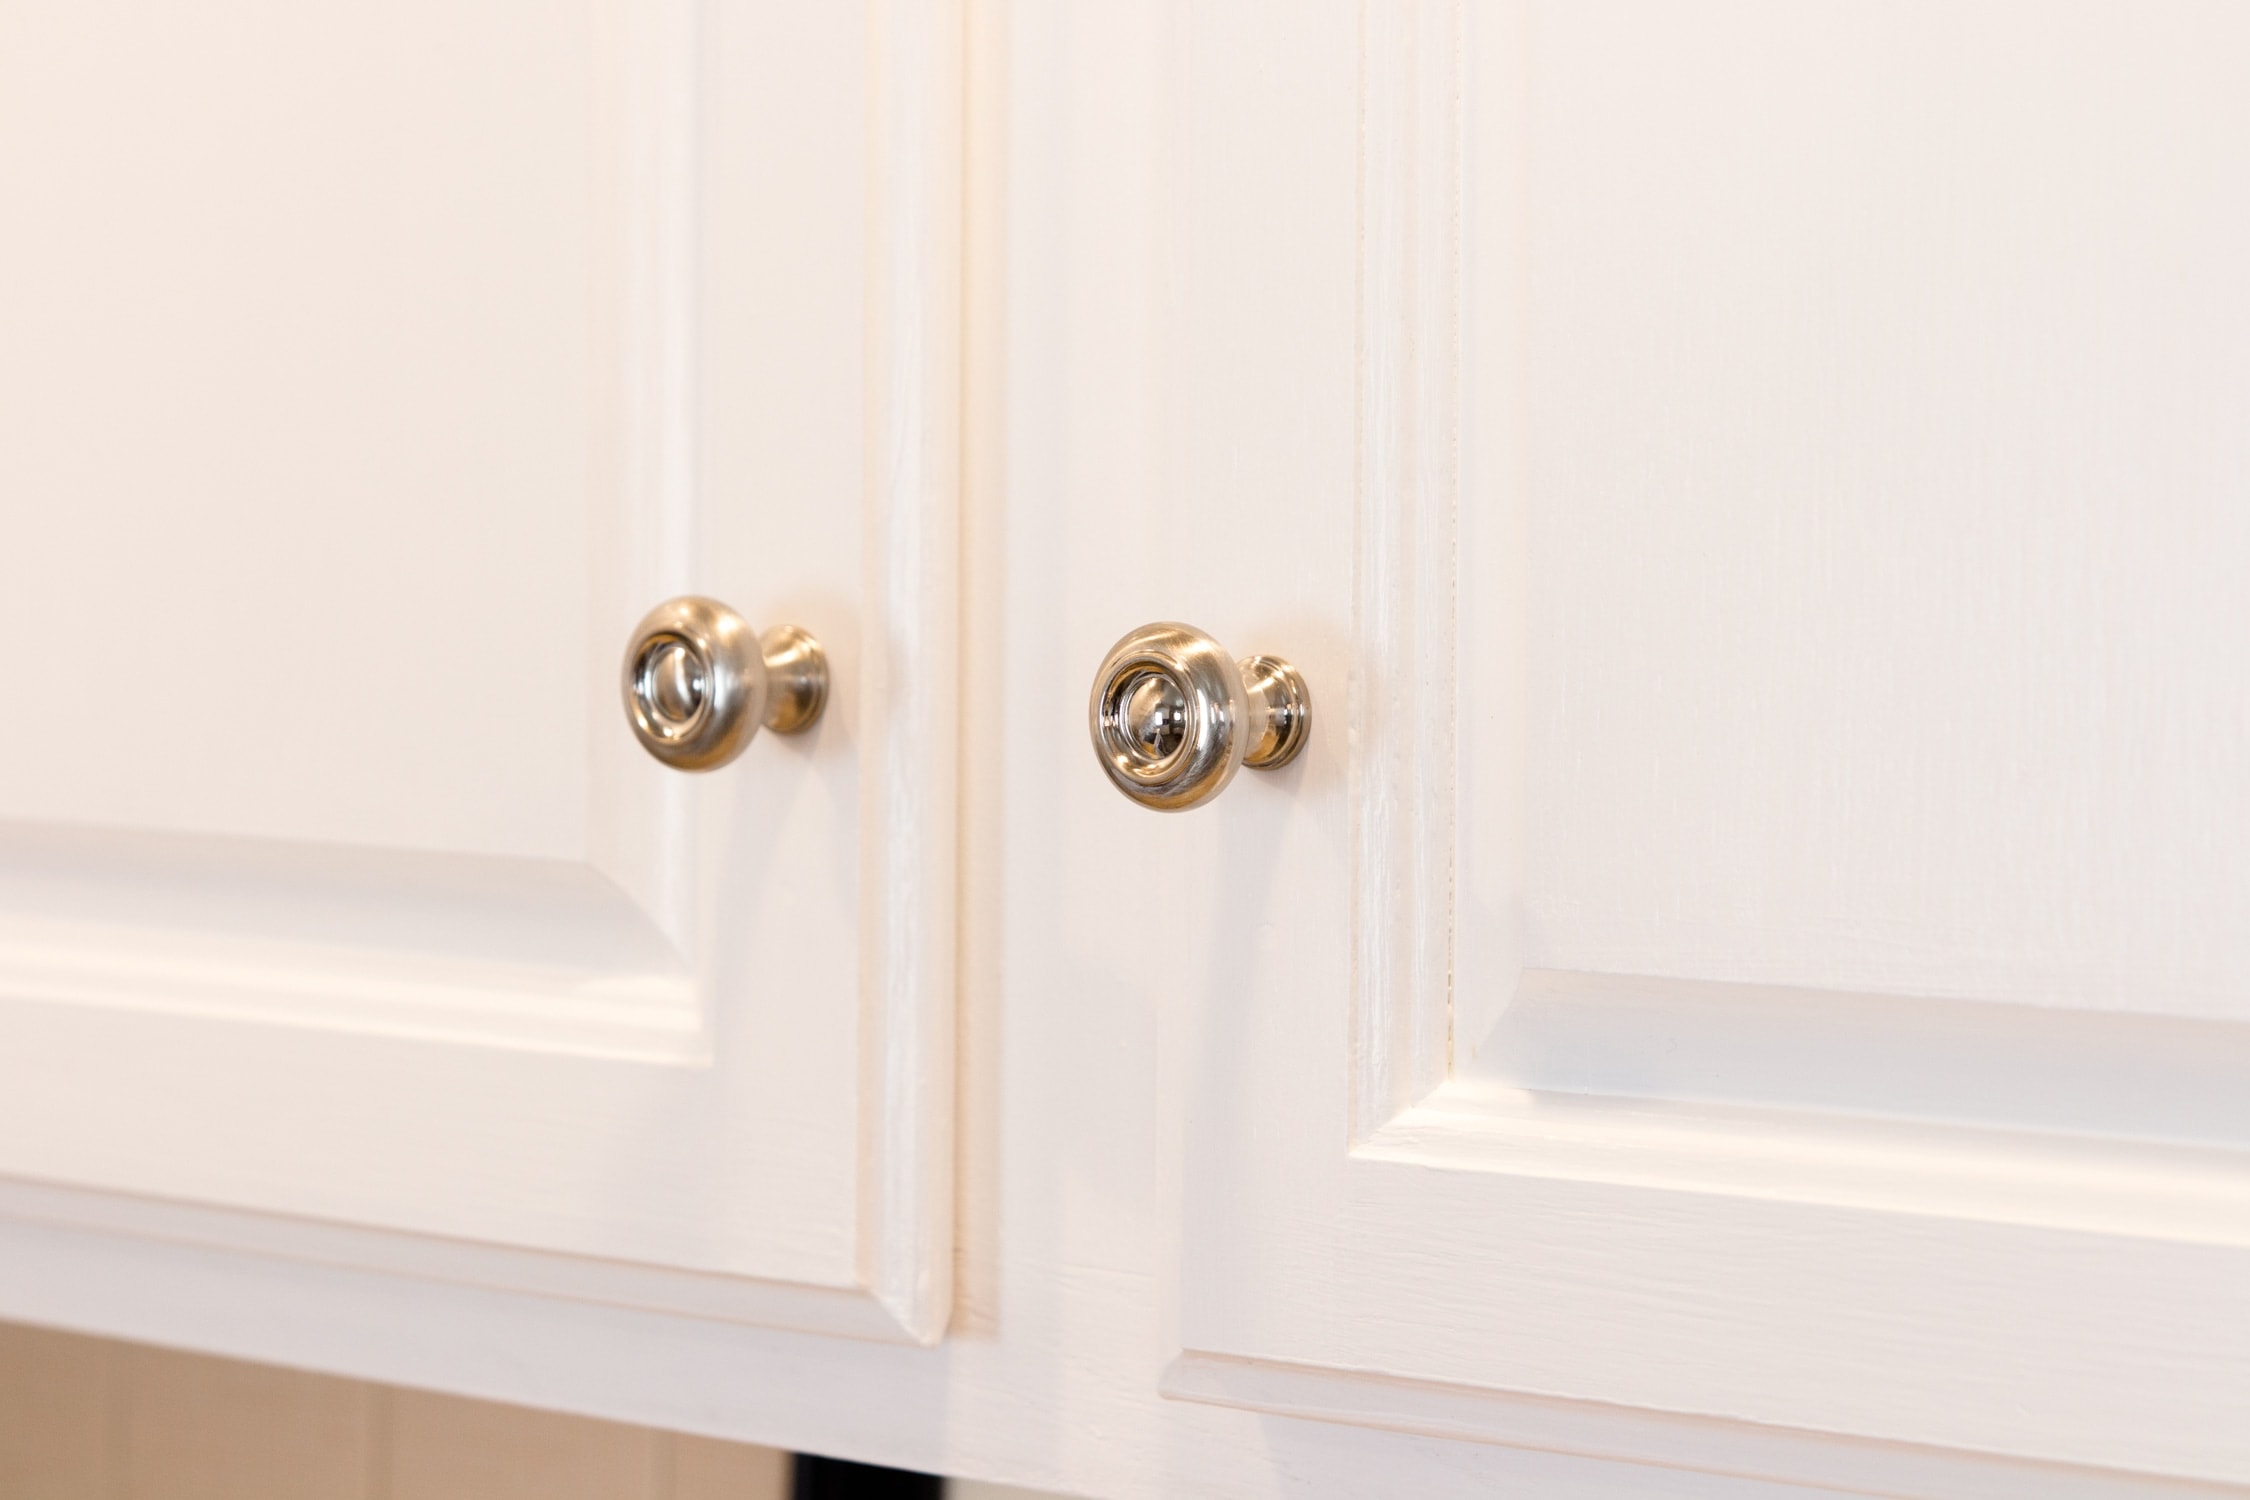 Close up view of silver pulls attached to bright white upper kitchen cabinets